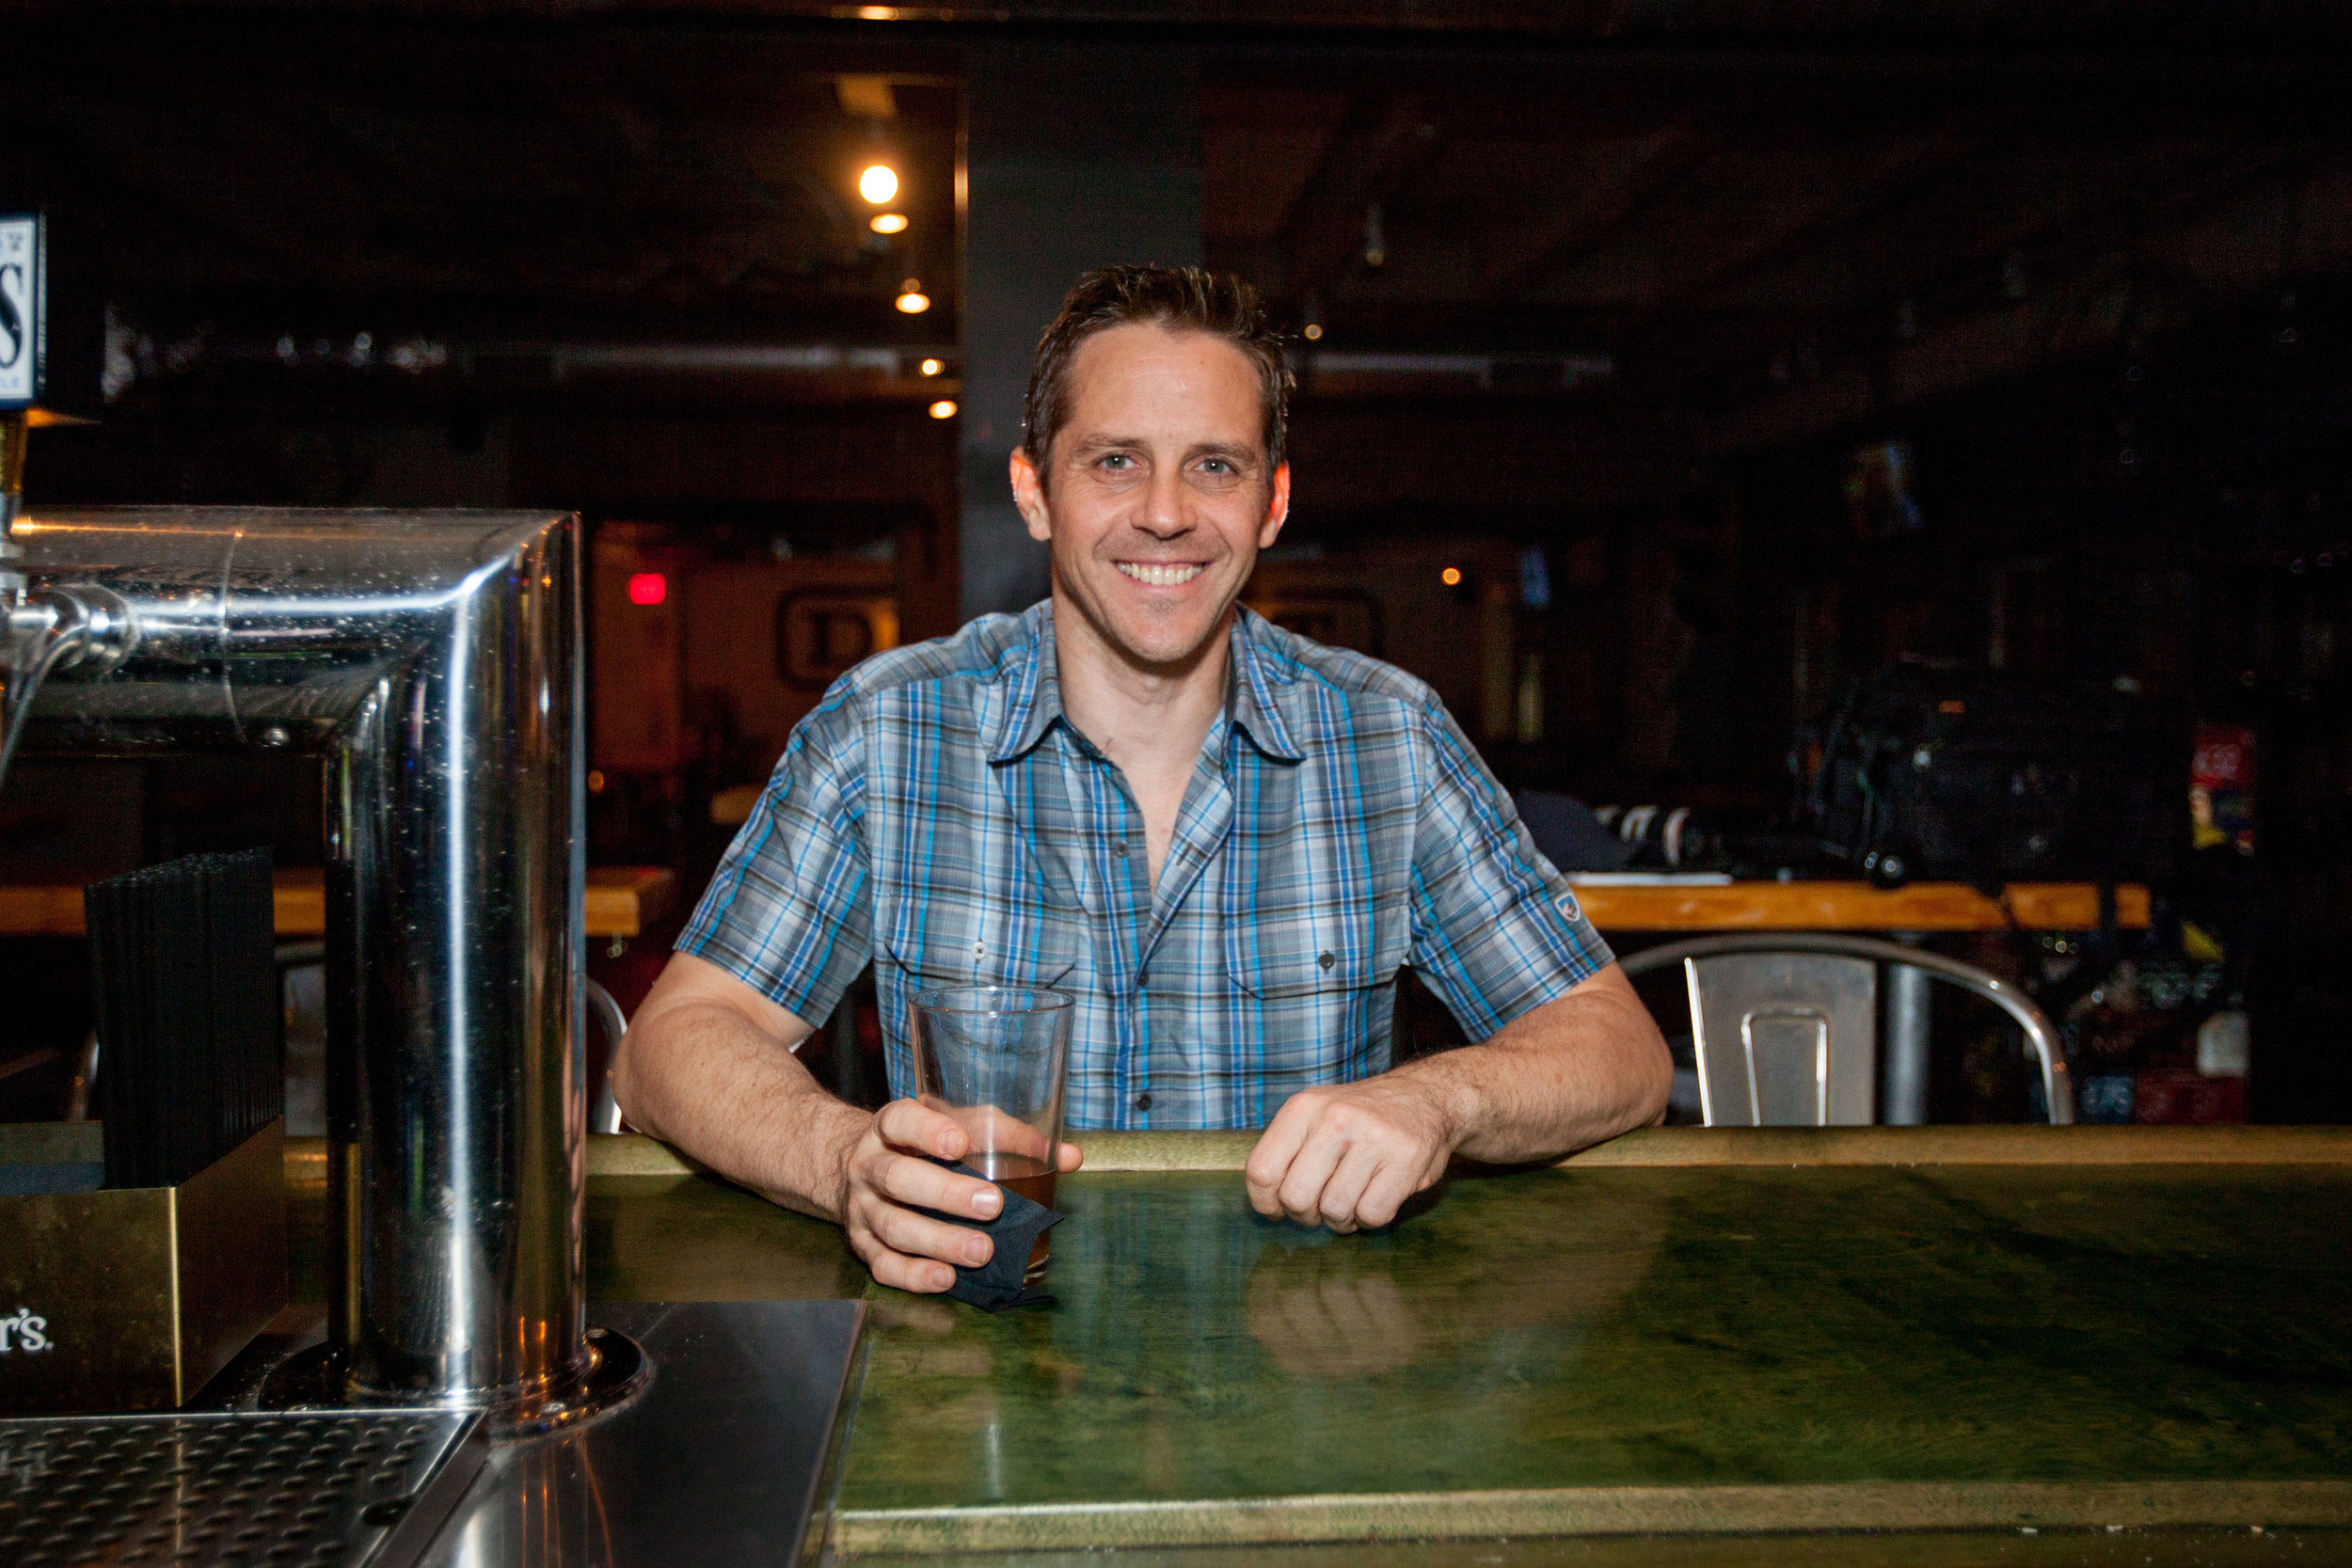 Man sitting at a bar with a beer glass in his hand.